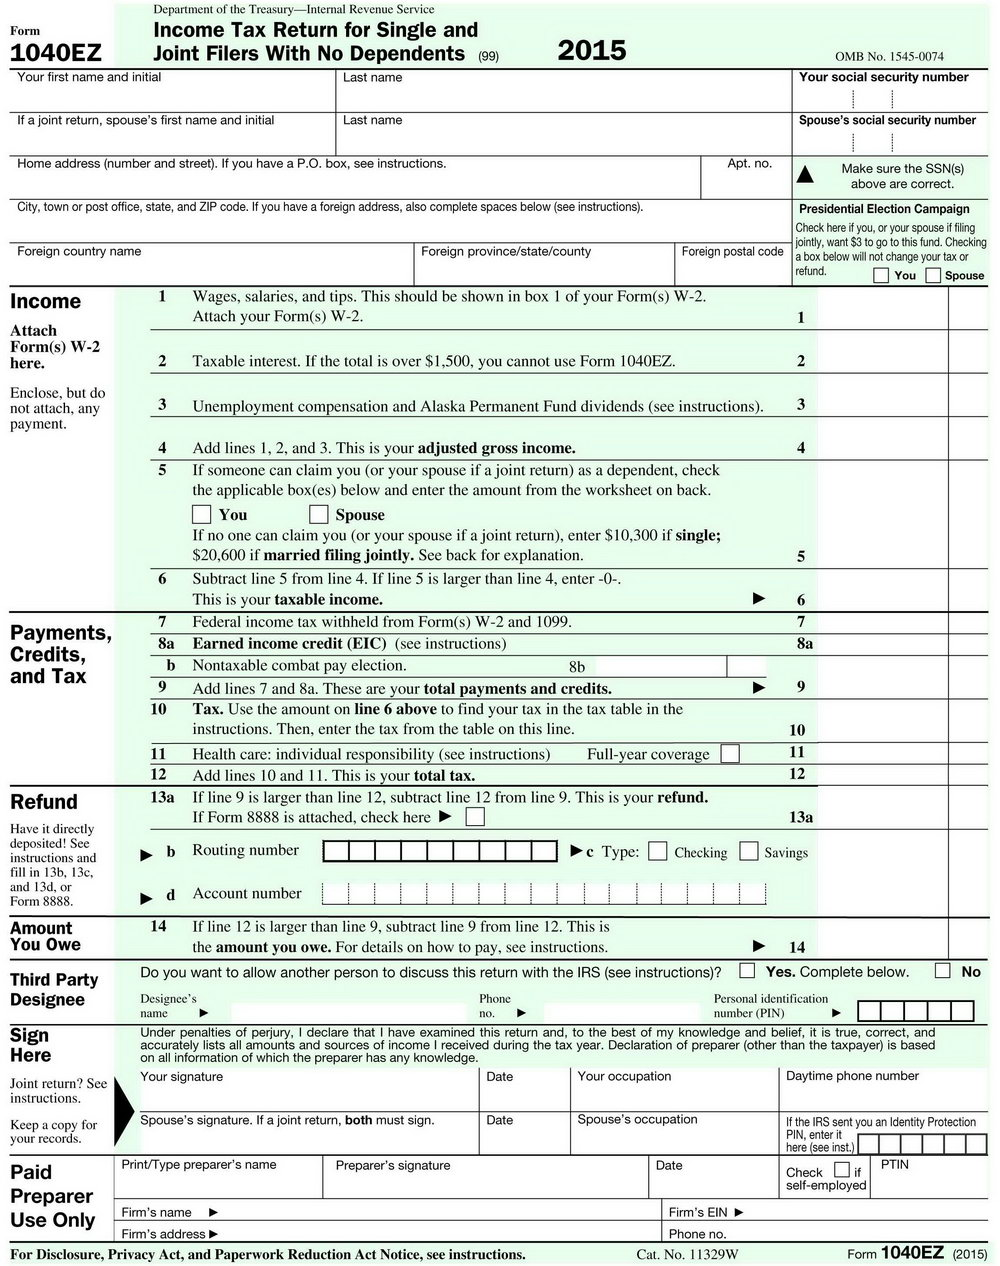 Income Tax Form 1040ez Instructions